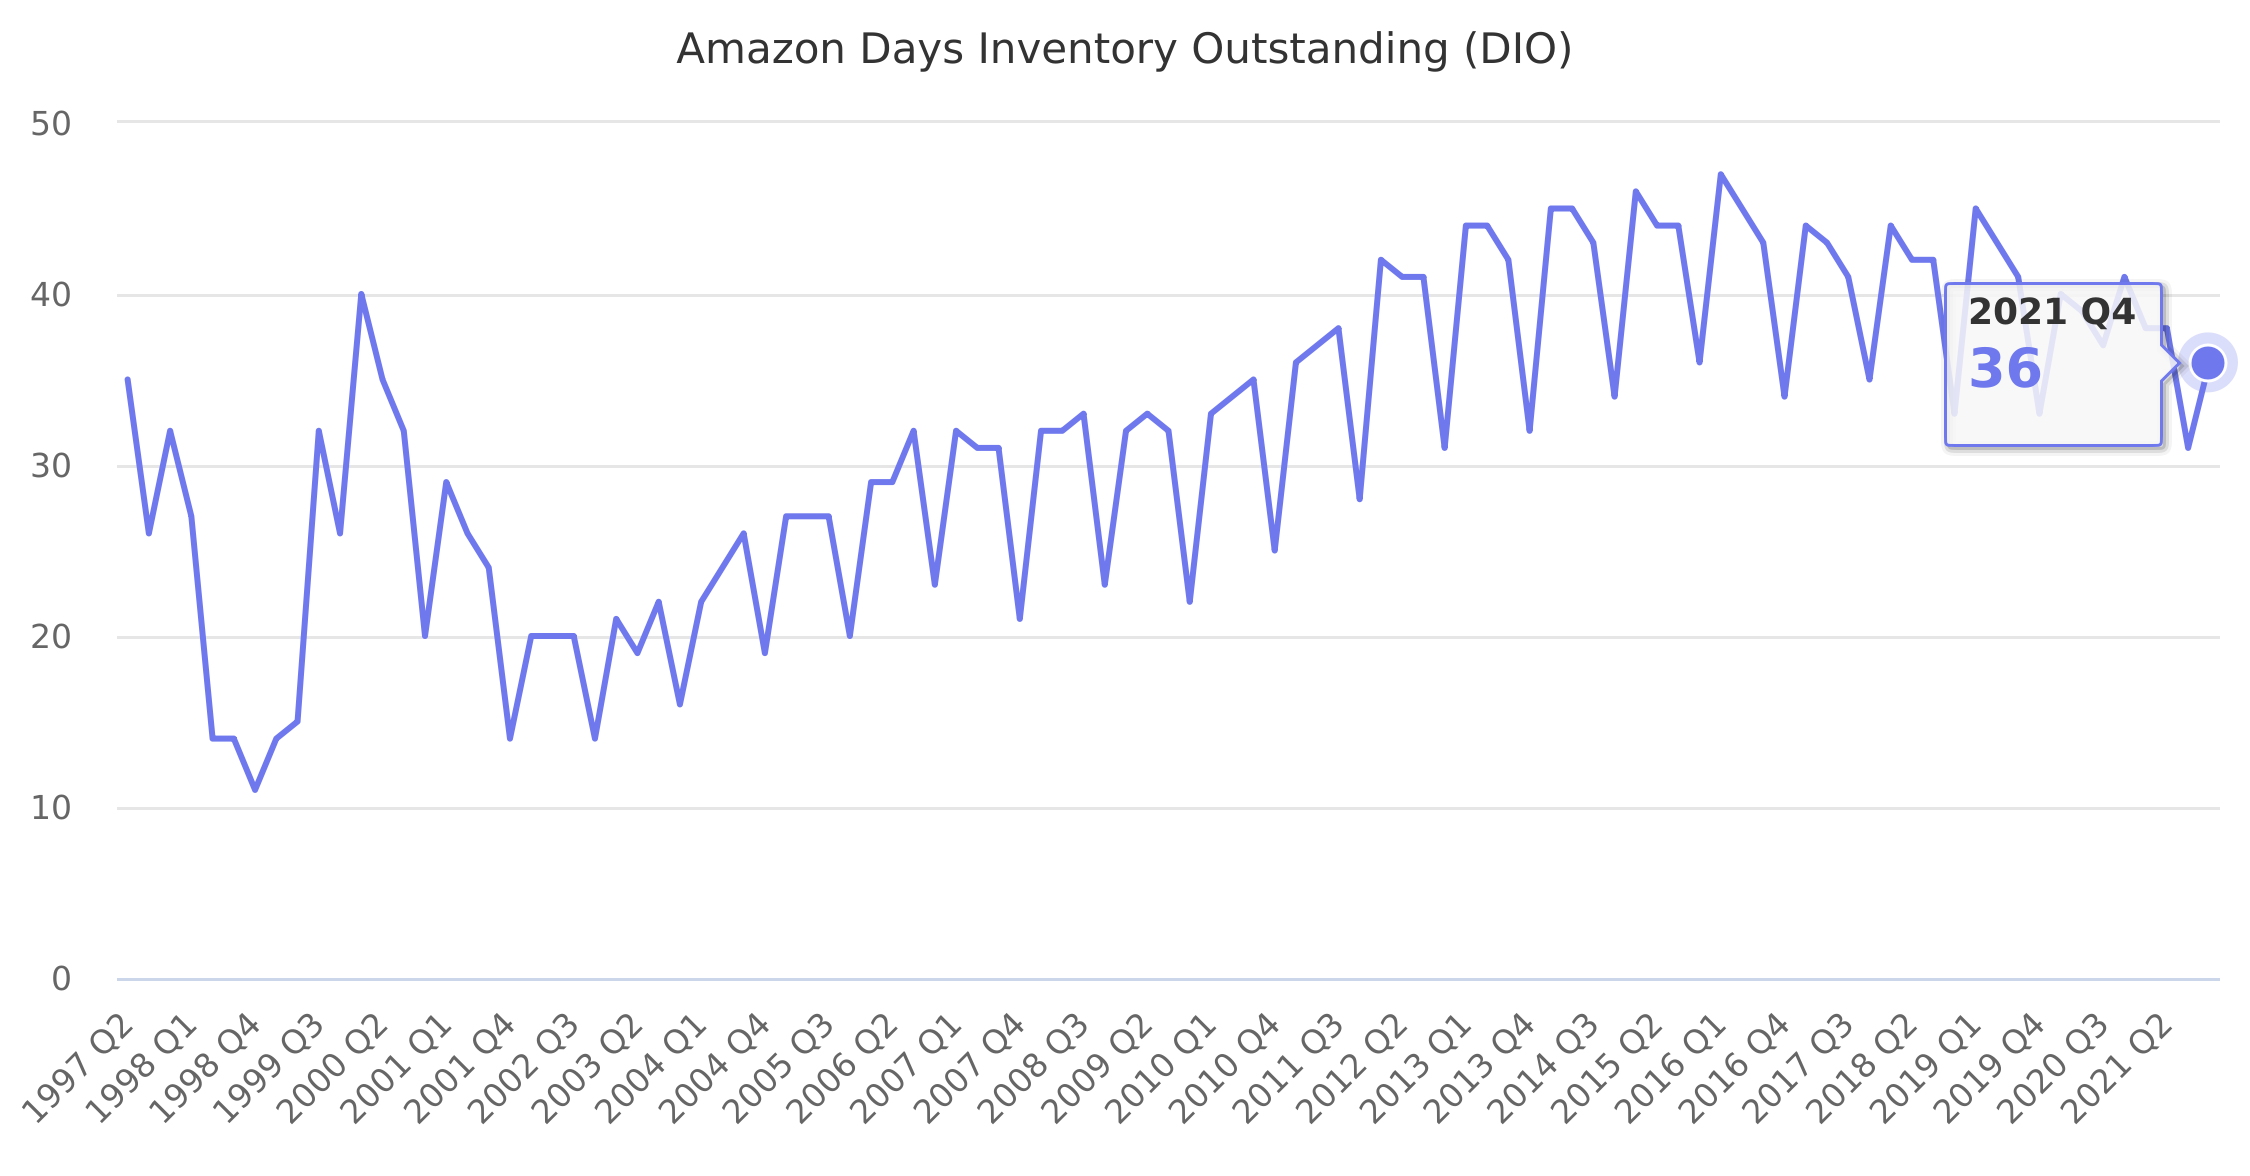 Amazon Days Inventory Outstanding (DIO) 1997-2019